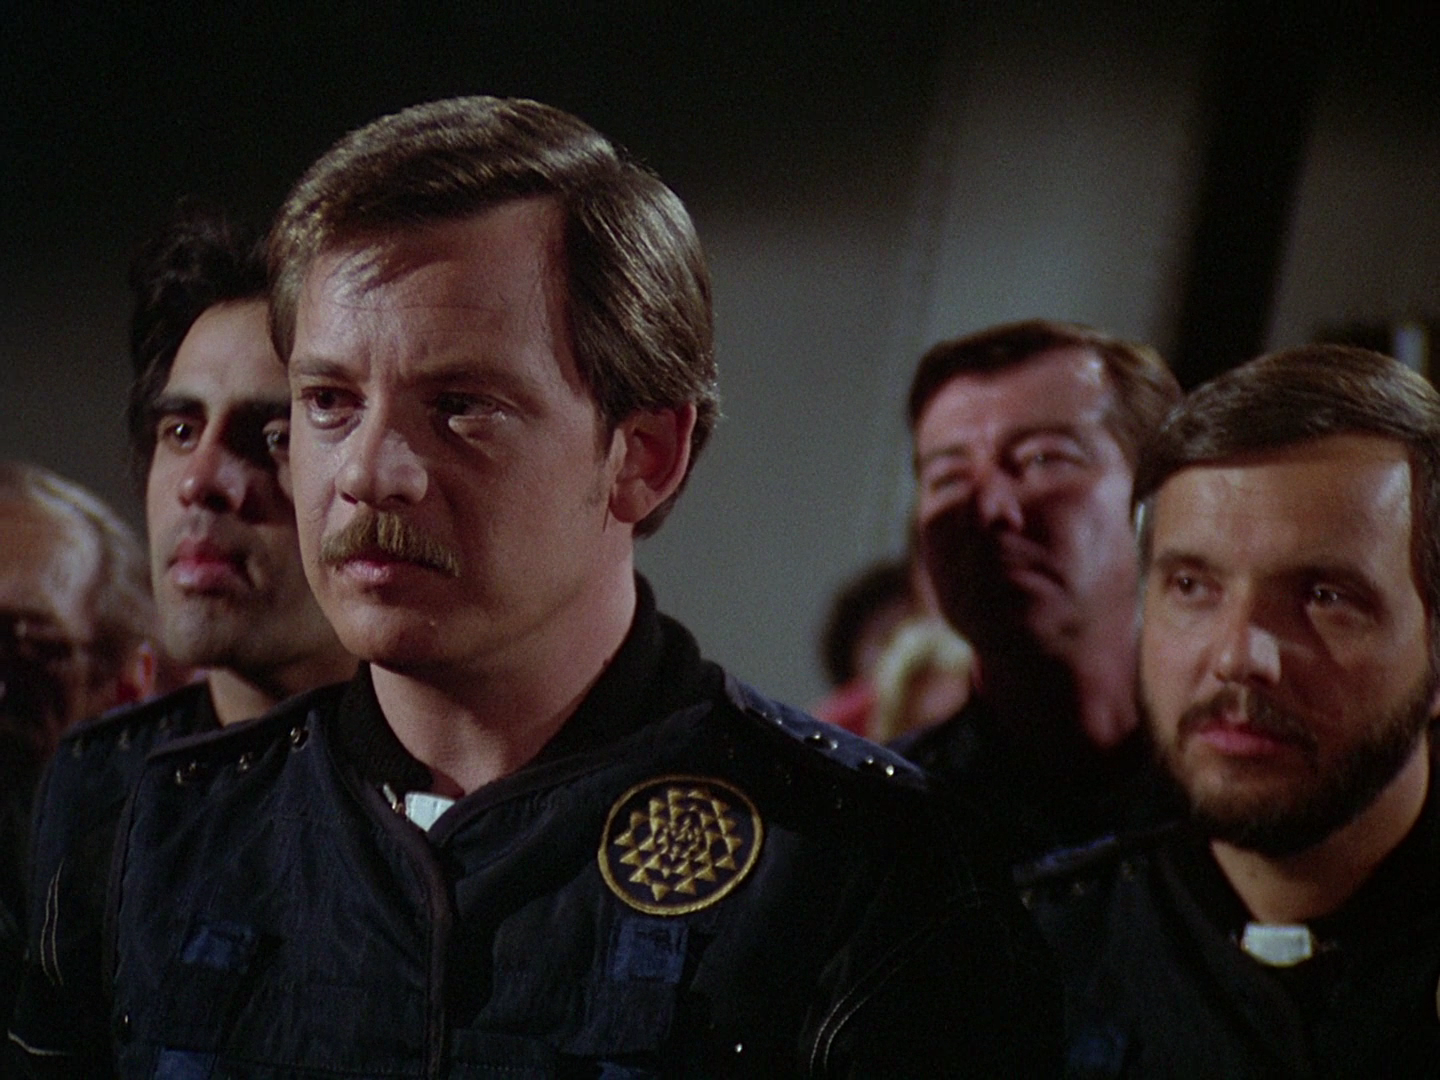 Security officer reese ron kelly security guard paul leclair security officer reese ron kelly security guard paul leclair battlestar galactica s01e19 episode 17 greetings from earth part 1 first aired m4hsunfo